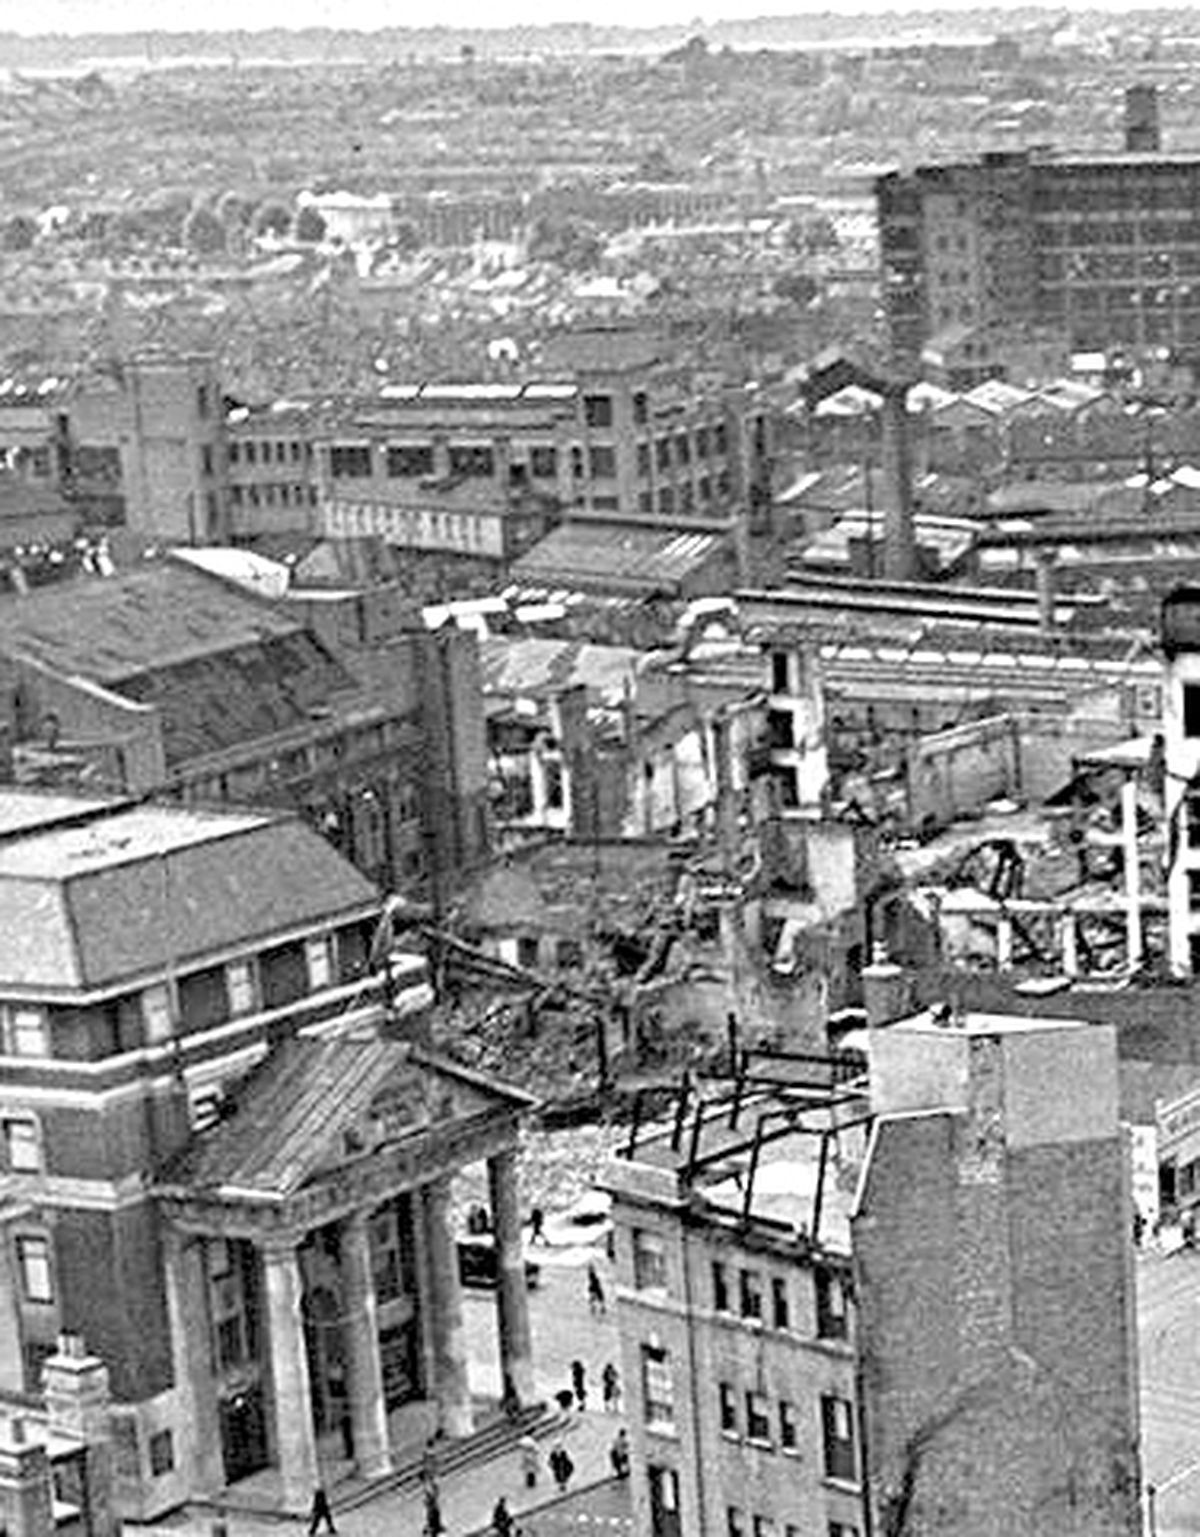 Aftermath of the Blitz on Coventry, November 1940.